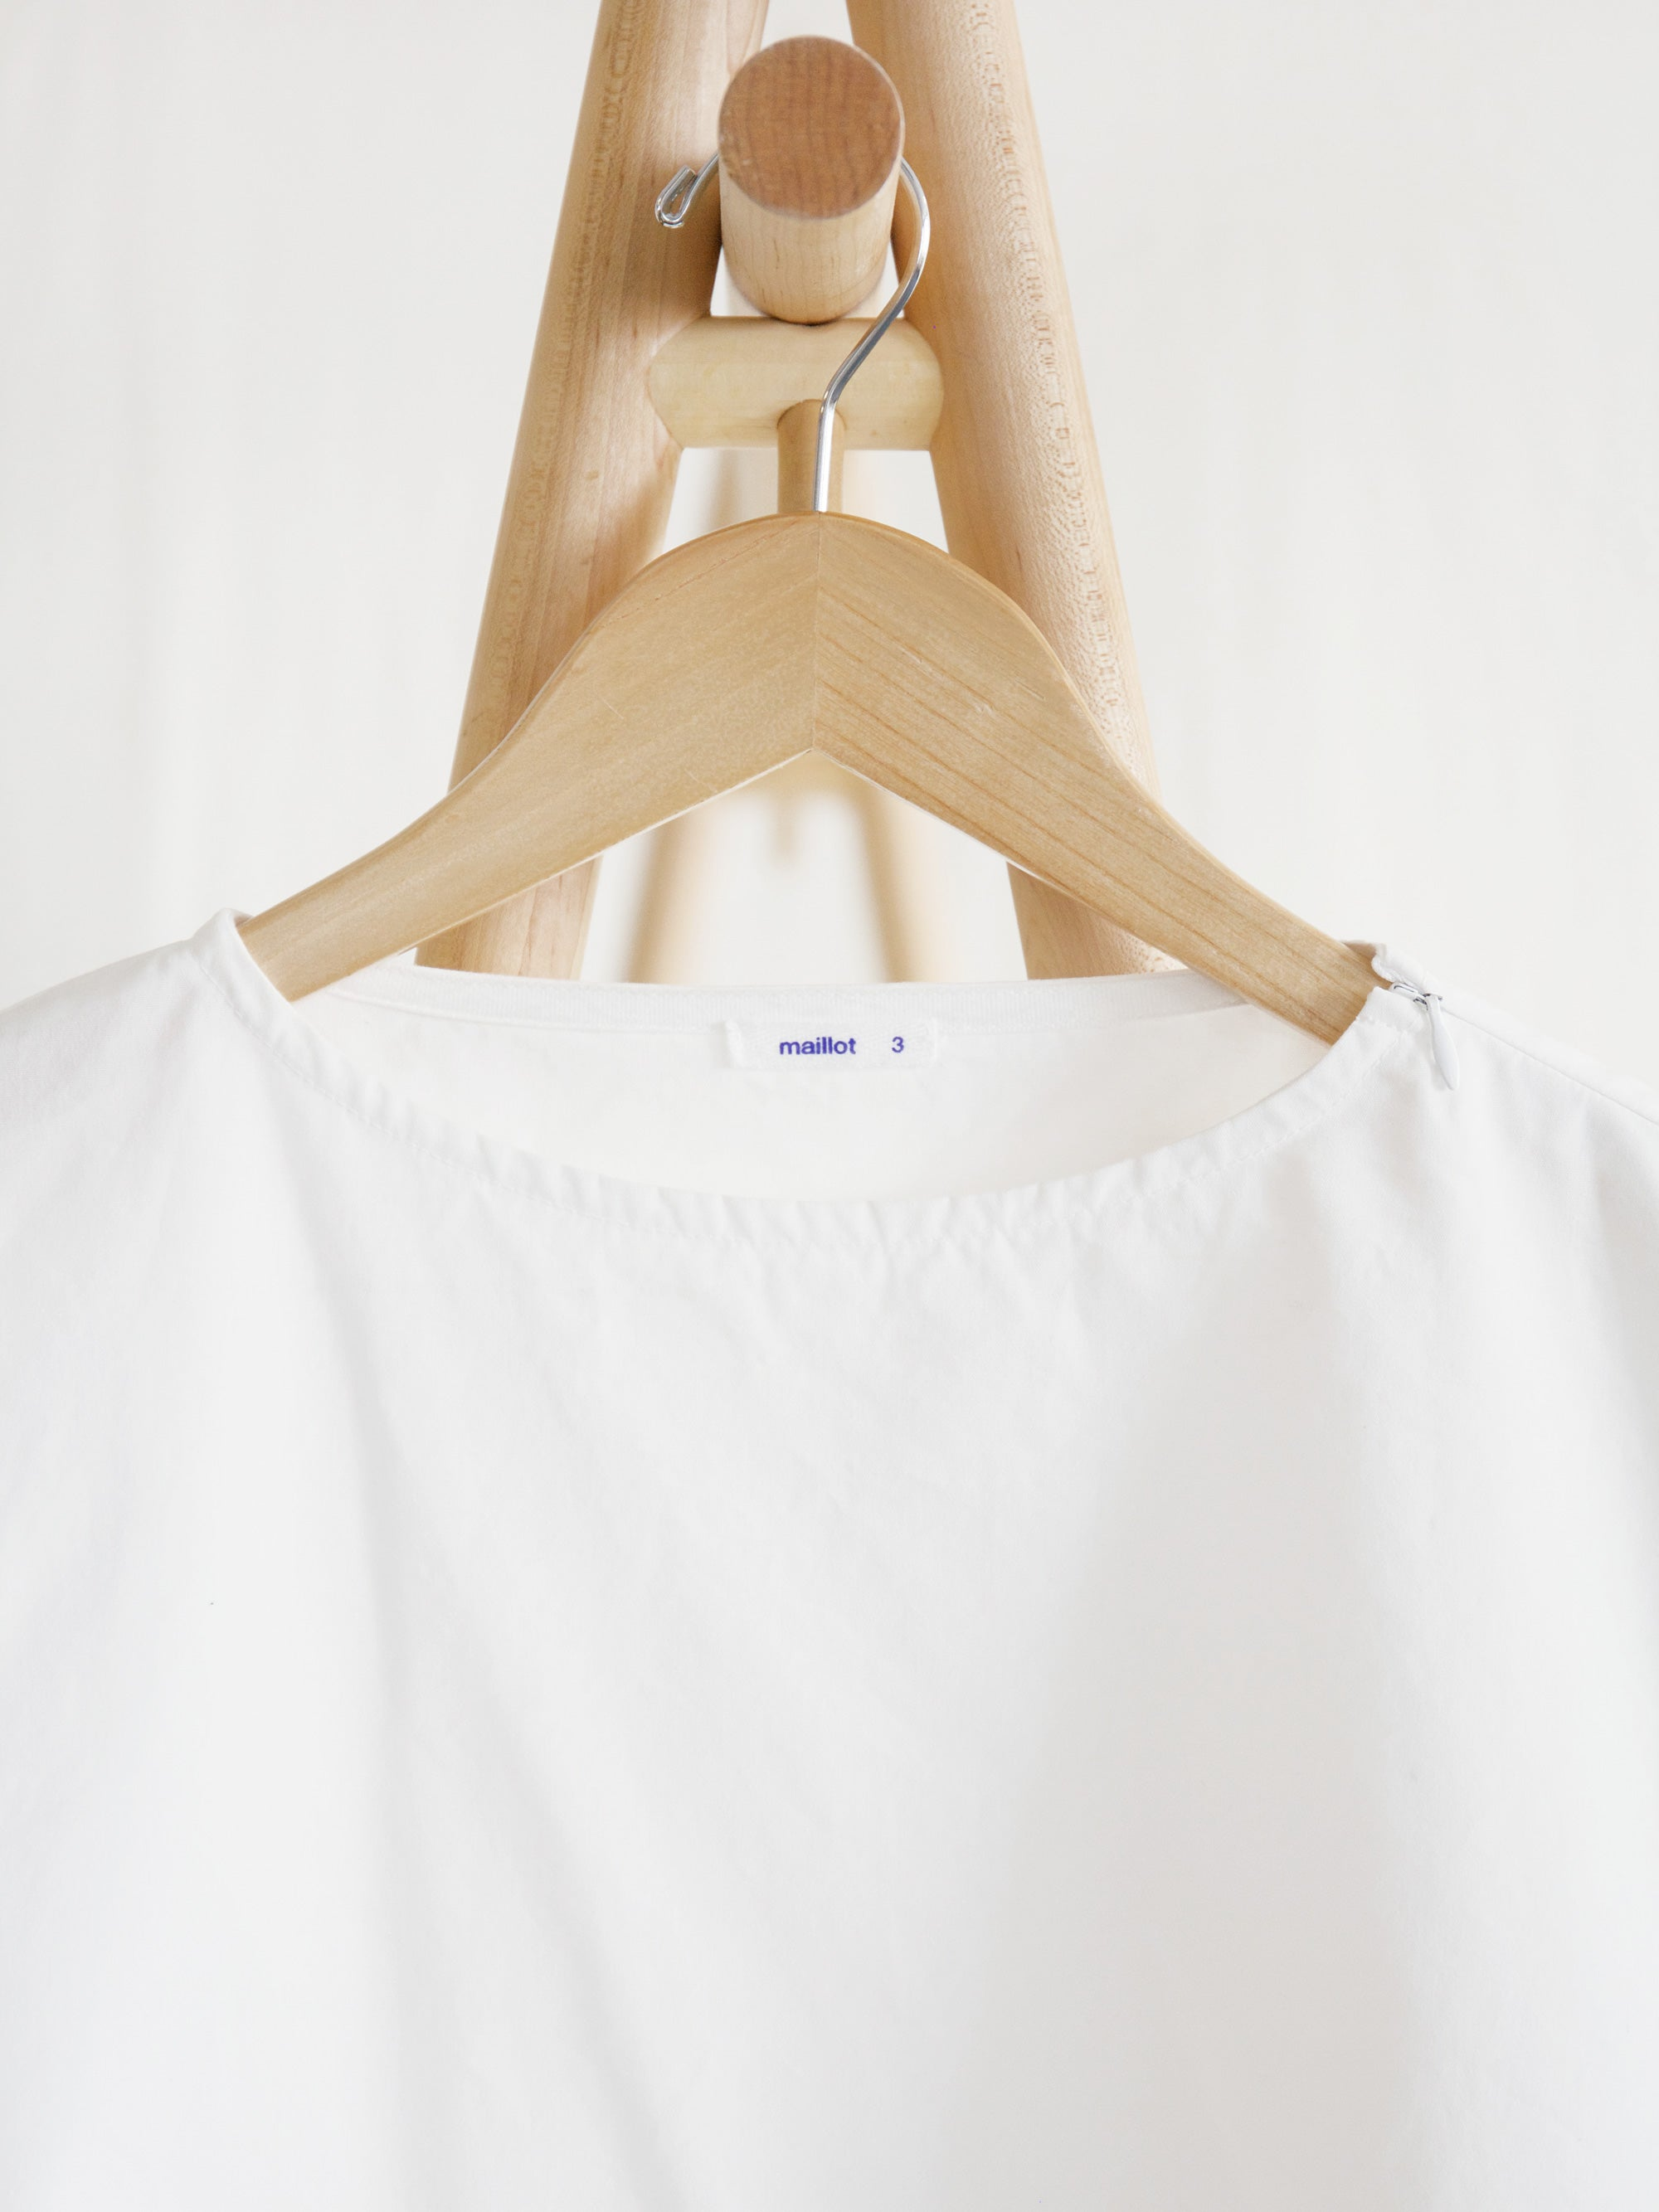 Namu Shop - Maillot Ultra Peach Boat Shirt - White